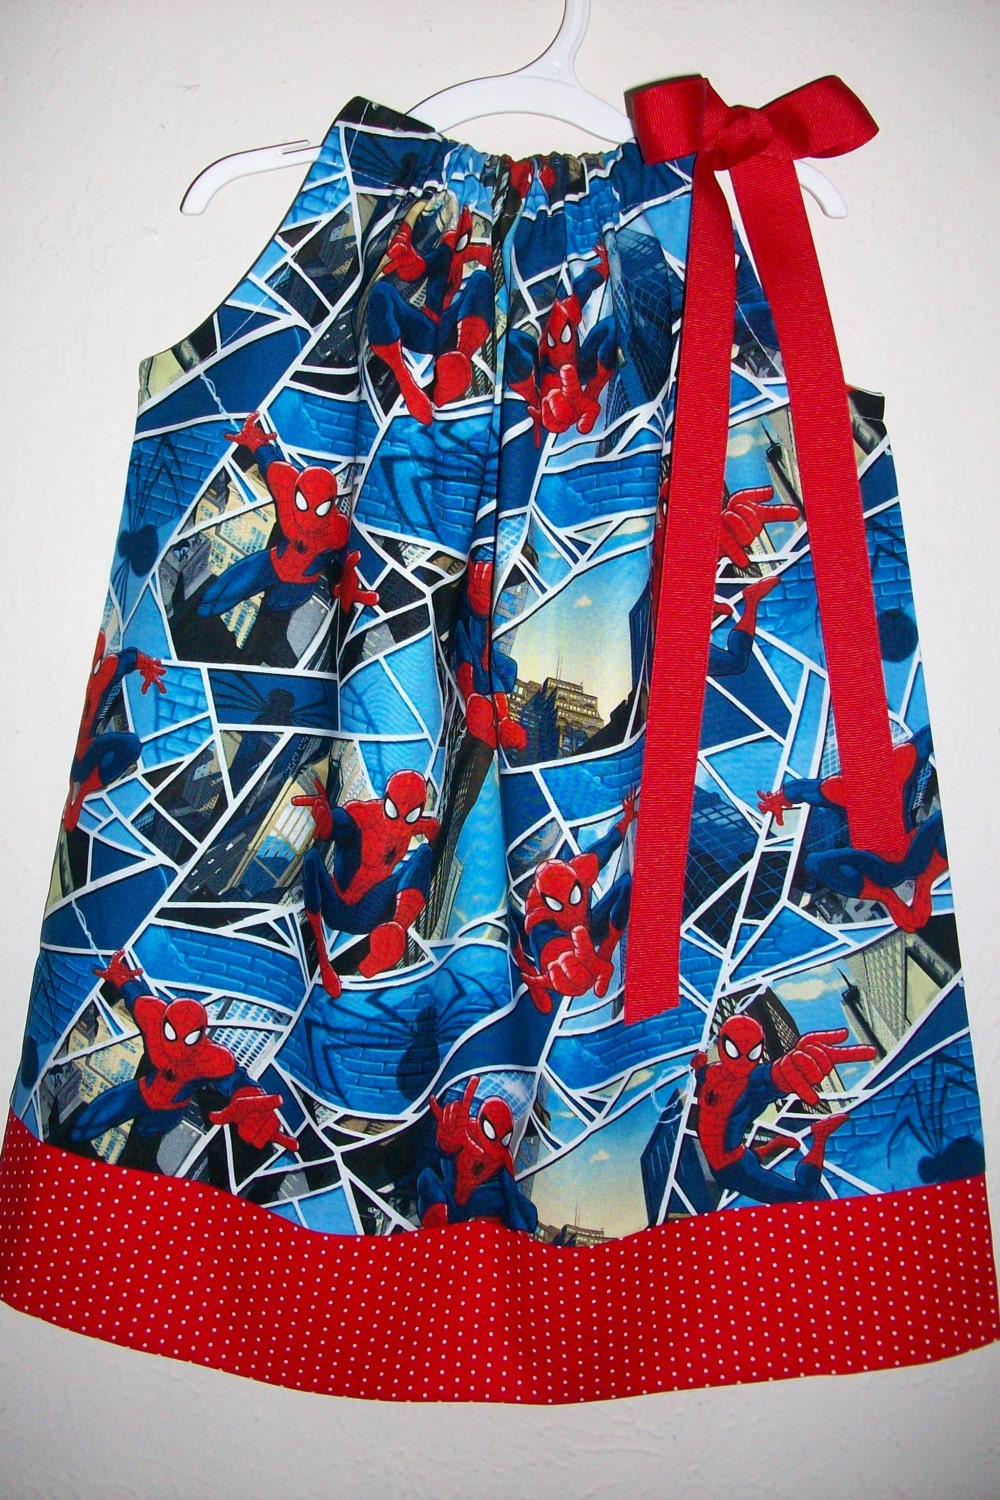 You searched for: spiderman dress! Etsy is the home to thousands of handmade, vintage, and one-of-a-kind products and gifts related to your search. No matter what you're looking for or where you are in the world, our global marketplace of sellers can help you find unique and affordable options. Let's get started!